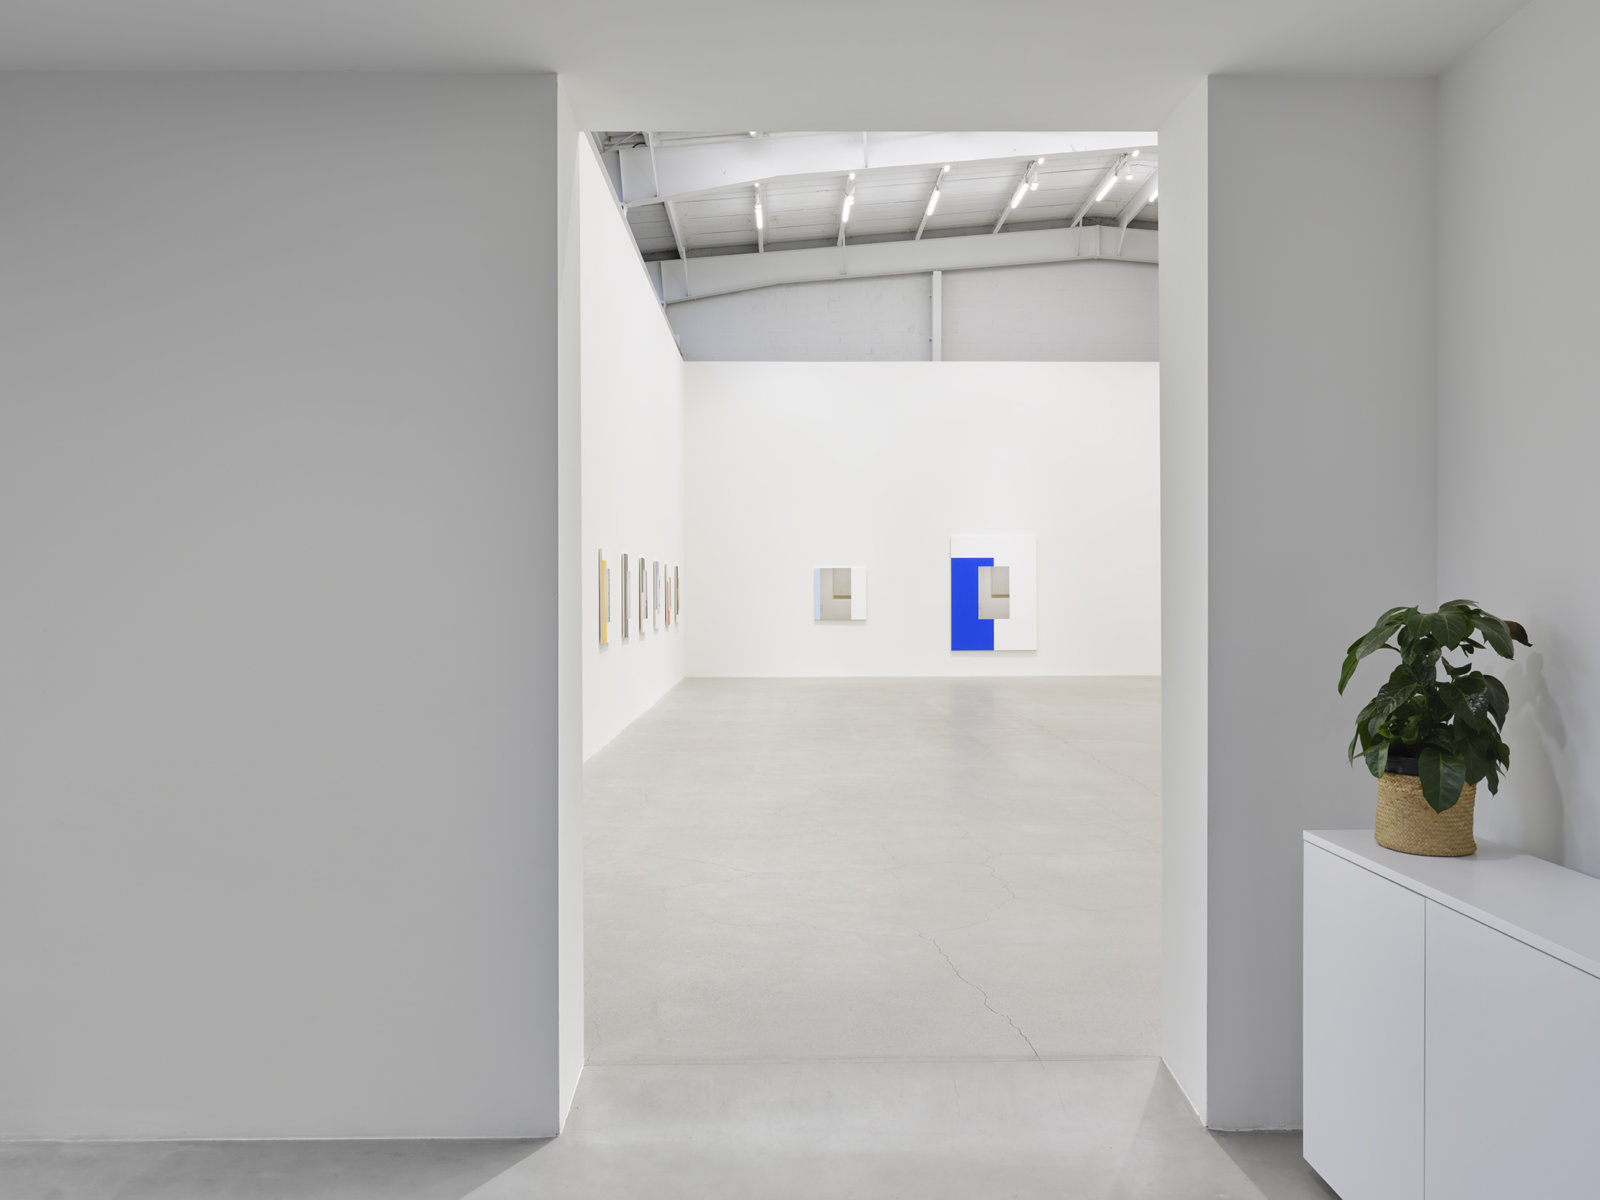 Ian Wallace, installation view, In the Museum, Catriona Jeffries, Vancouver, 2021 by Ian Wallace